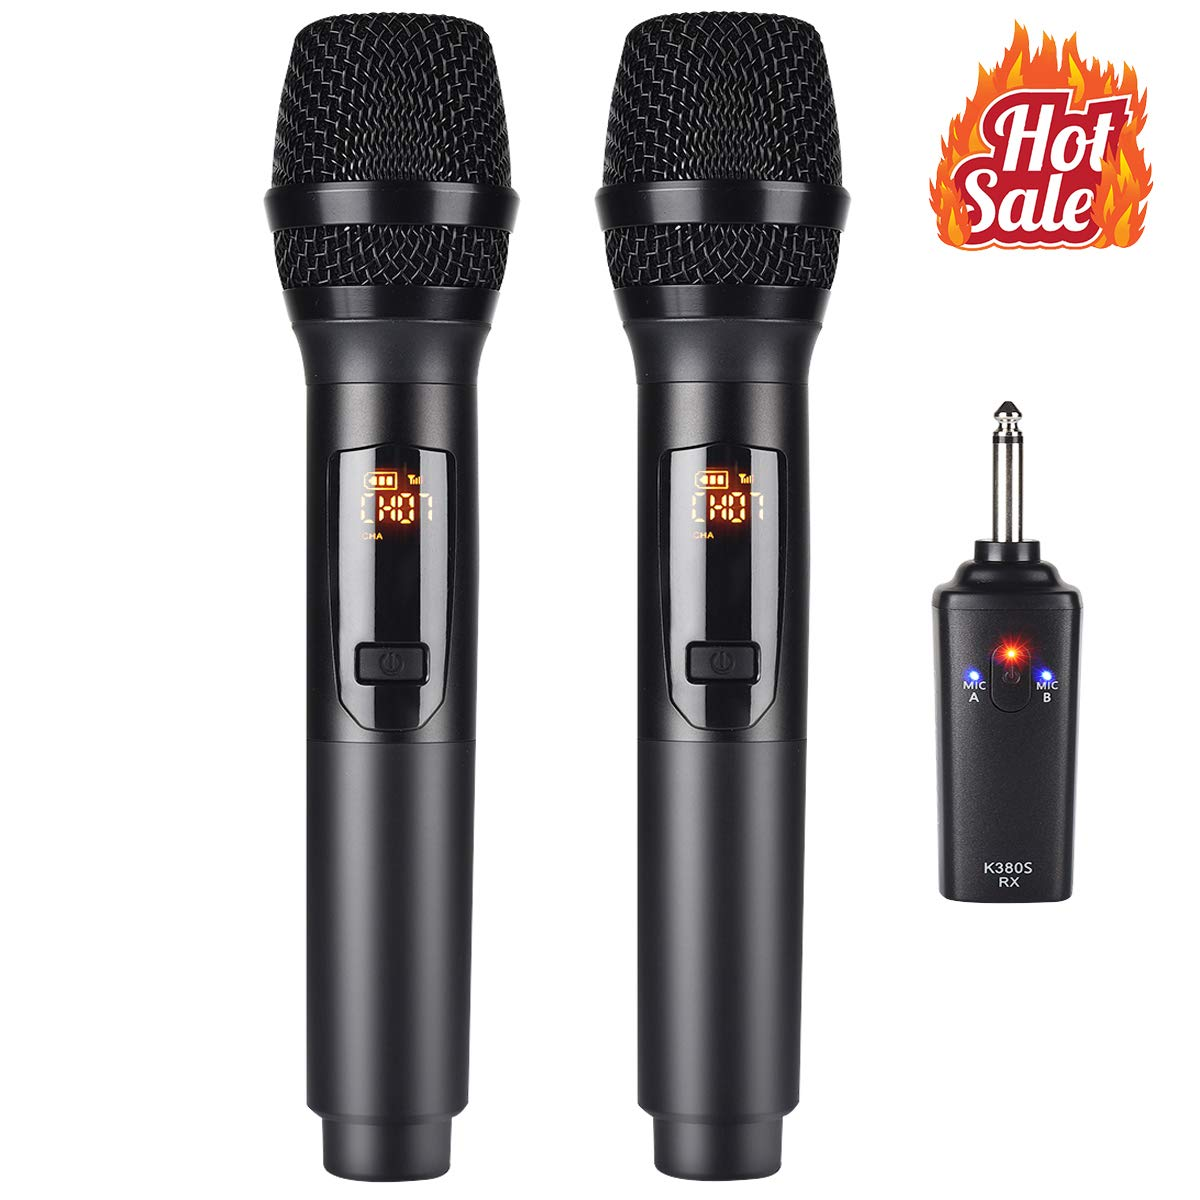 Kithouse K380S Rechargeable Wireless Microphone Karaoke Microphone Wireless Mic Dual with Receiver System Set - Professional UHF Handheld Dynamic Cordless Microphone for Singing Karaoke Speech Church by KITHOUSE